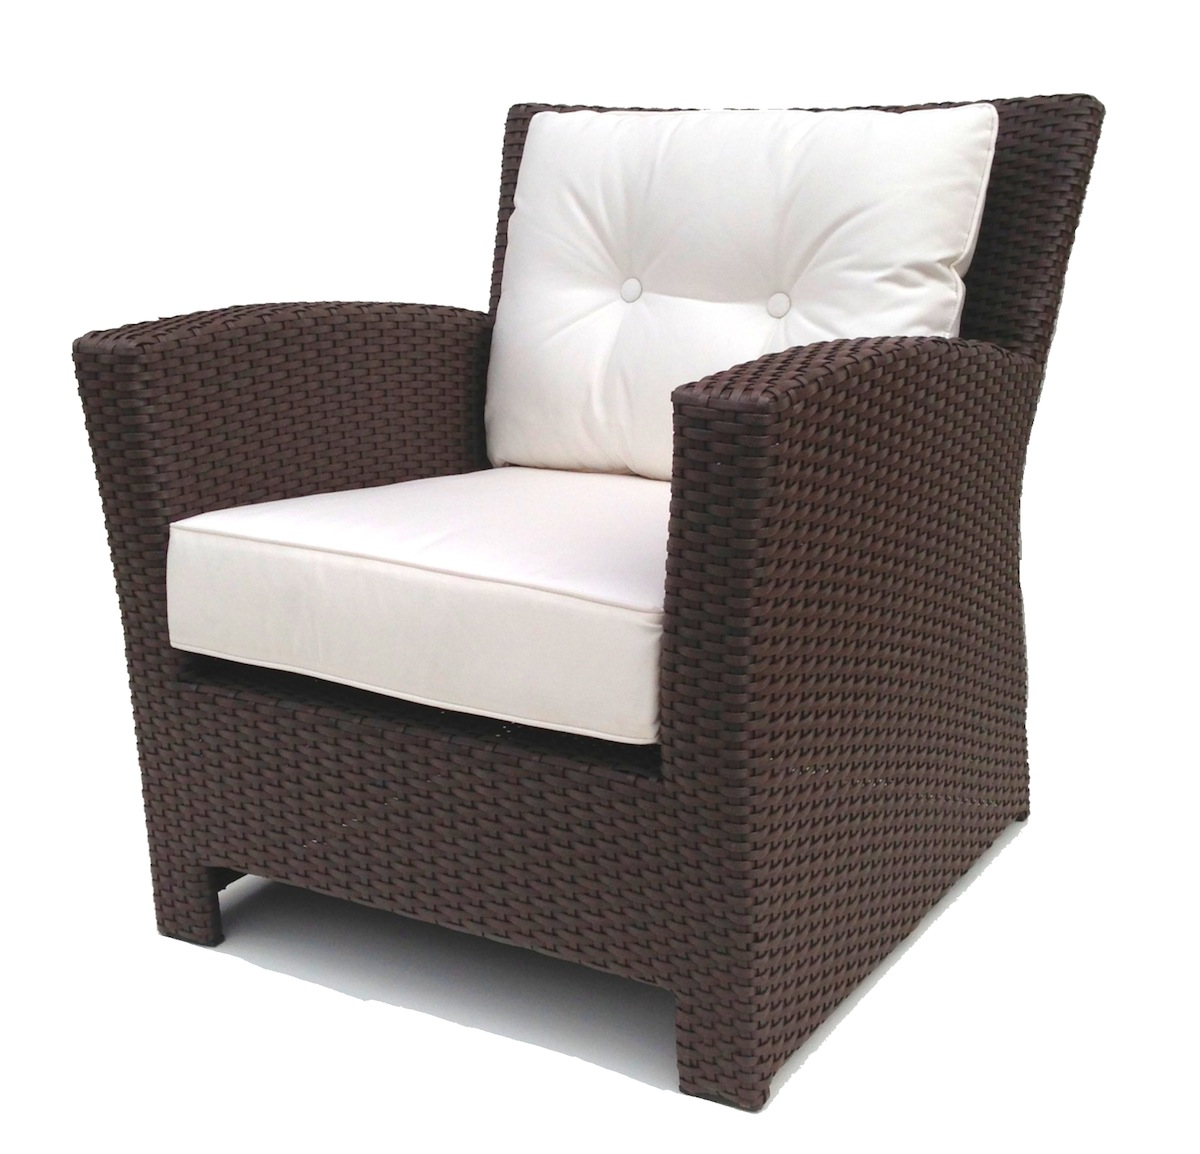 Cheap Wicker Chair: Outdoor Wicker Club Chair